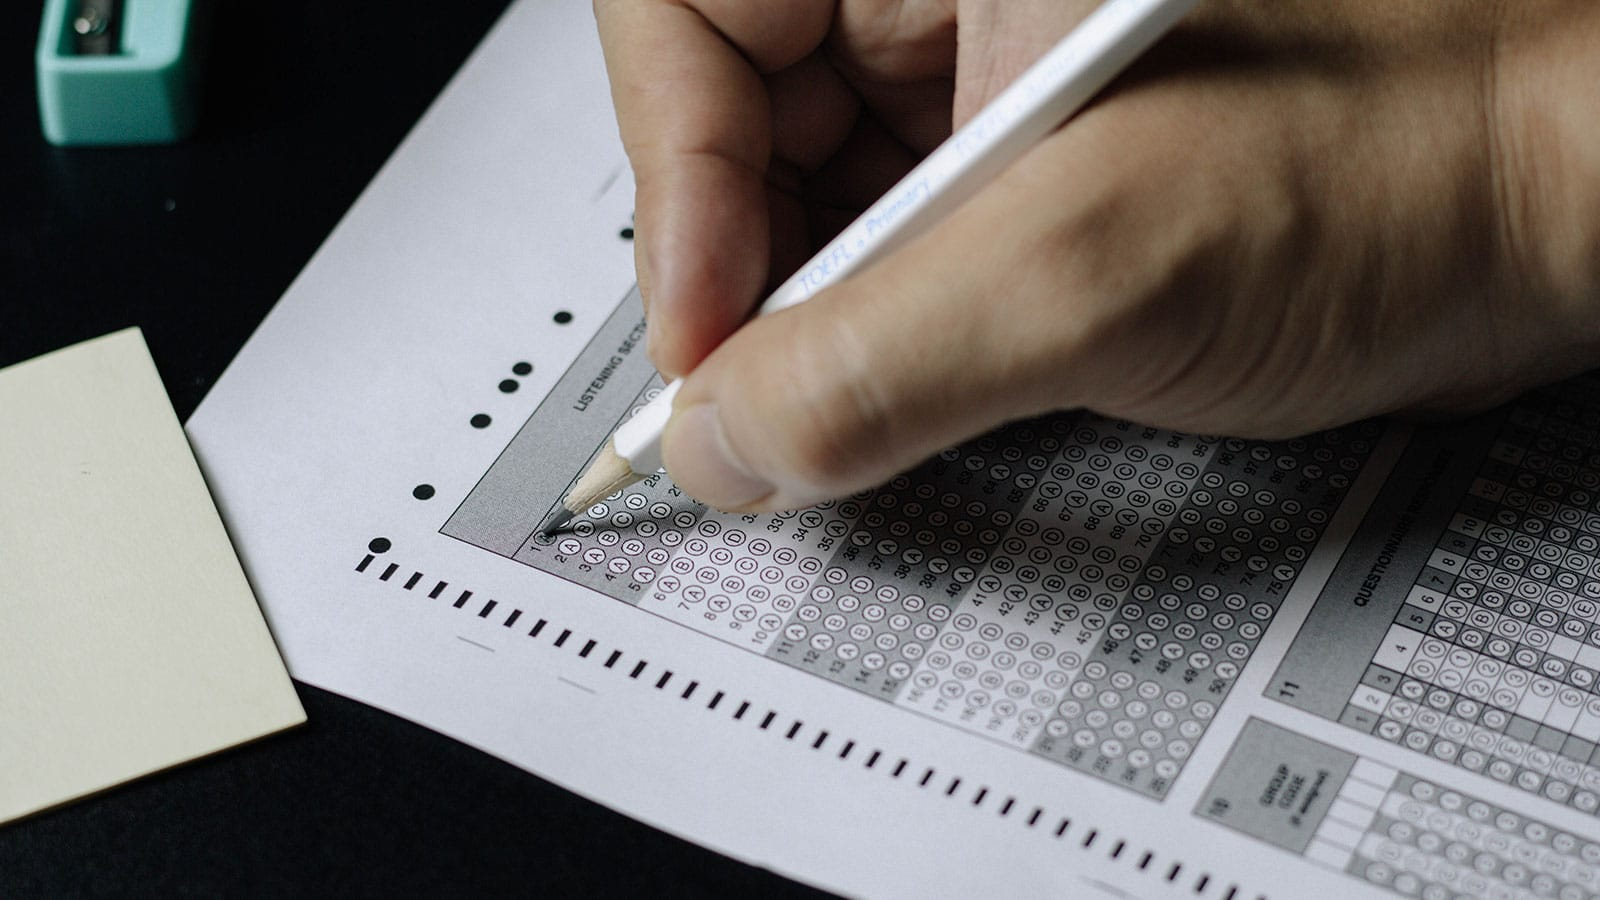 Student filling out test sheet